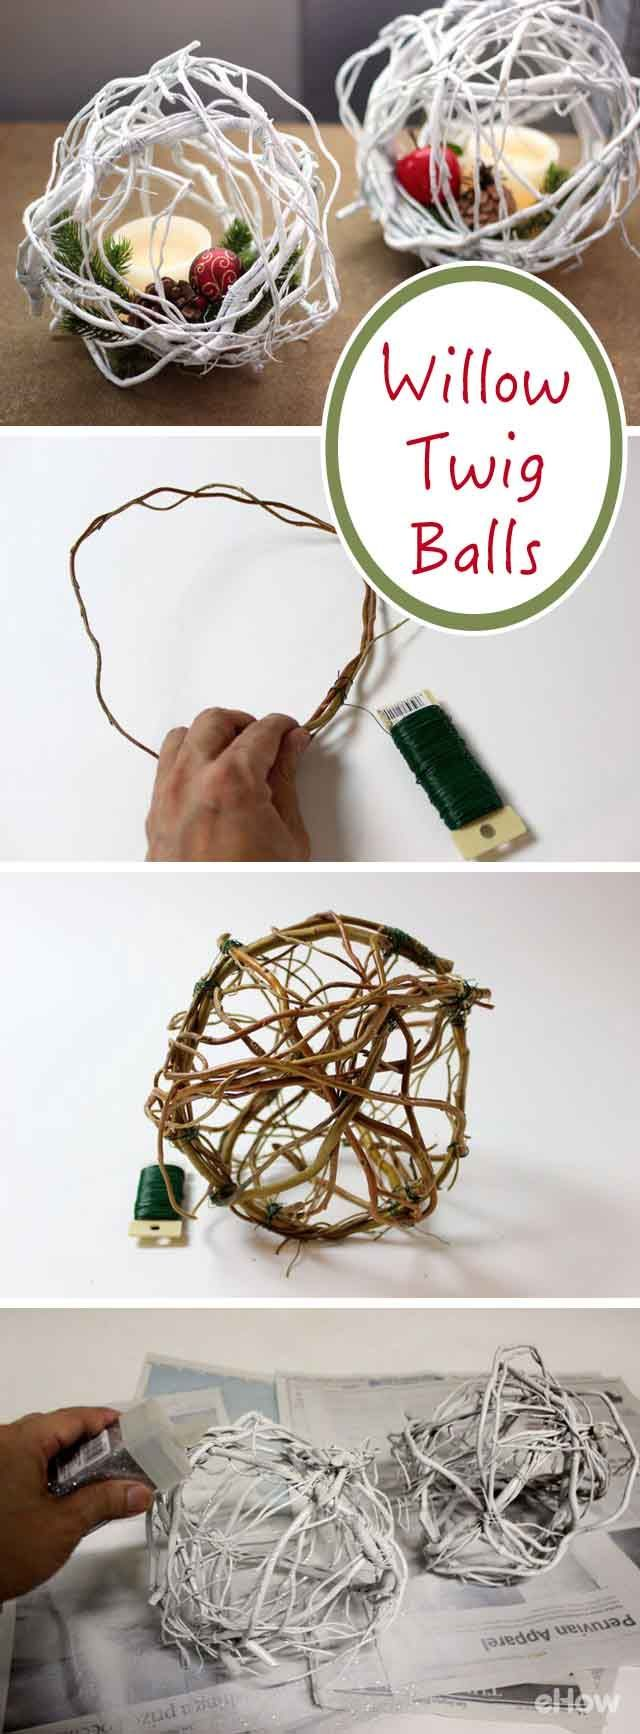 These Beautiful DIY Willow Twig Balls Are Perfect Holiday ...